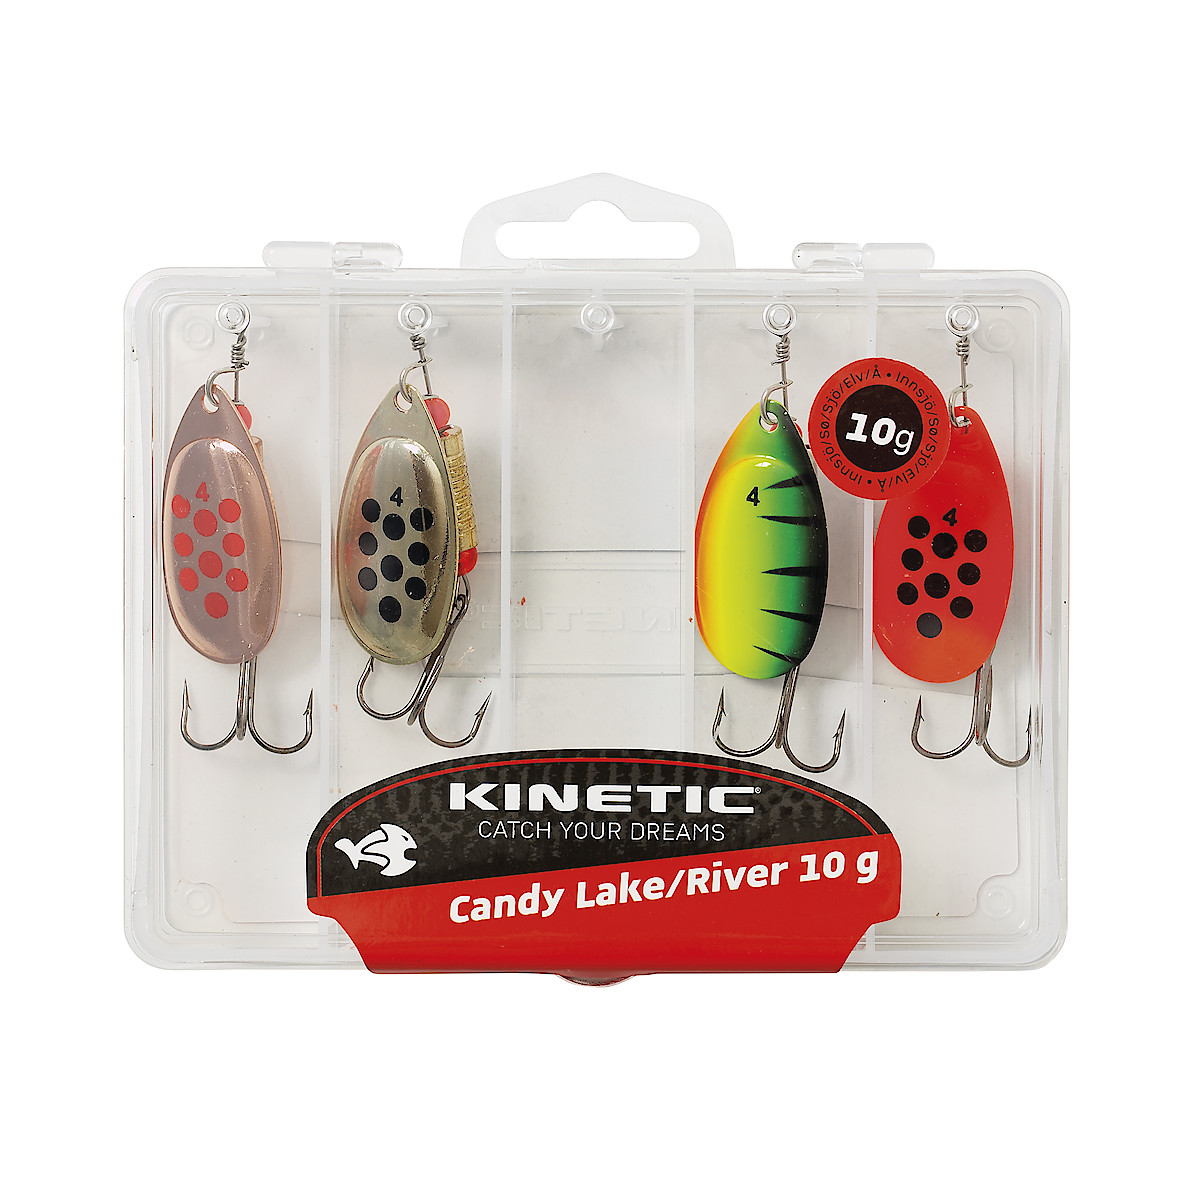 Kinetic Candy, spinnere, 10 g, 4 stk.